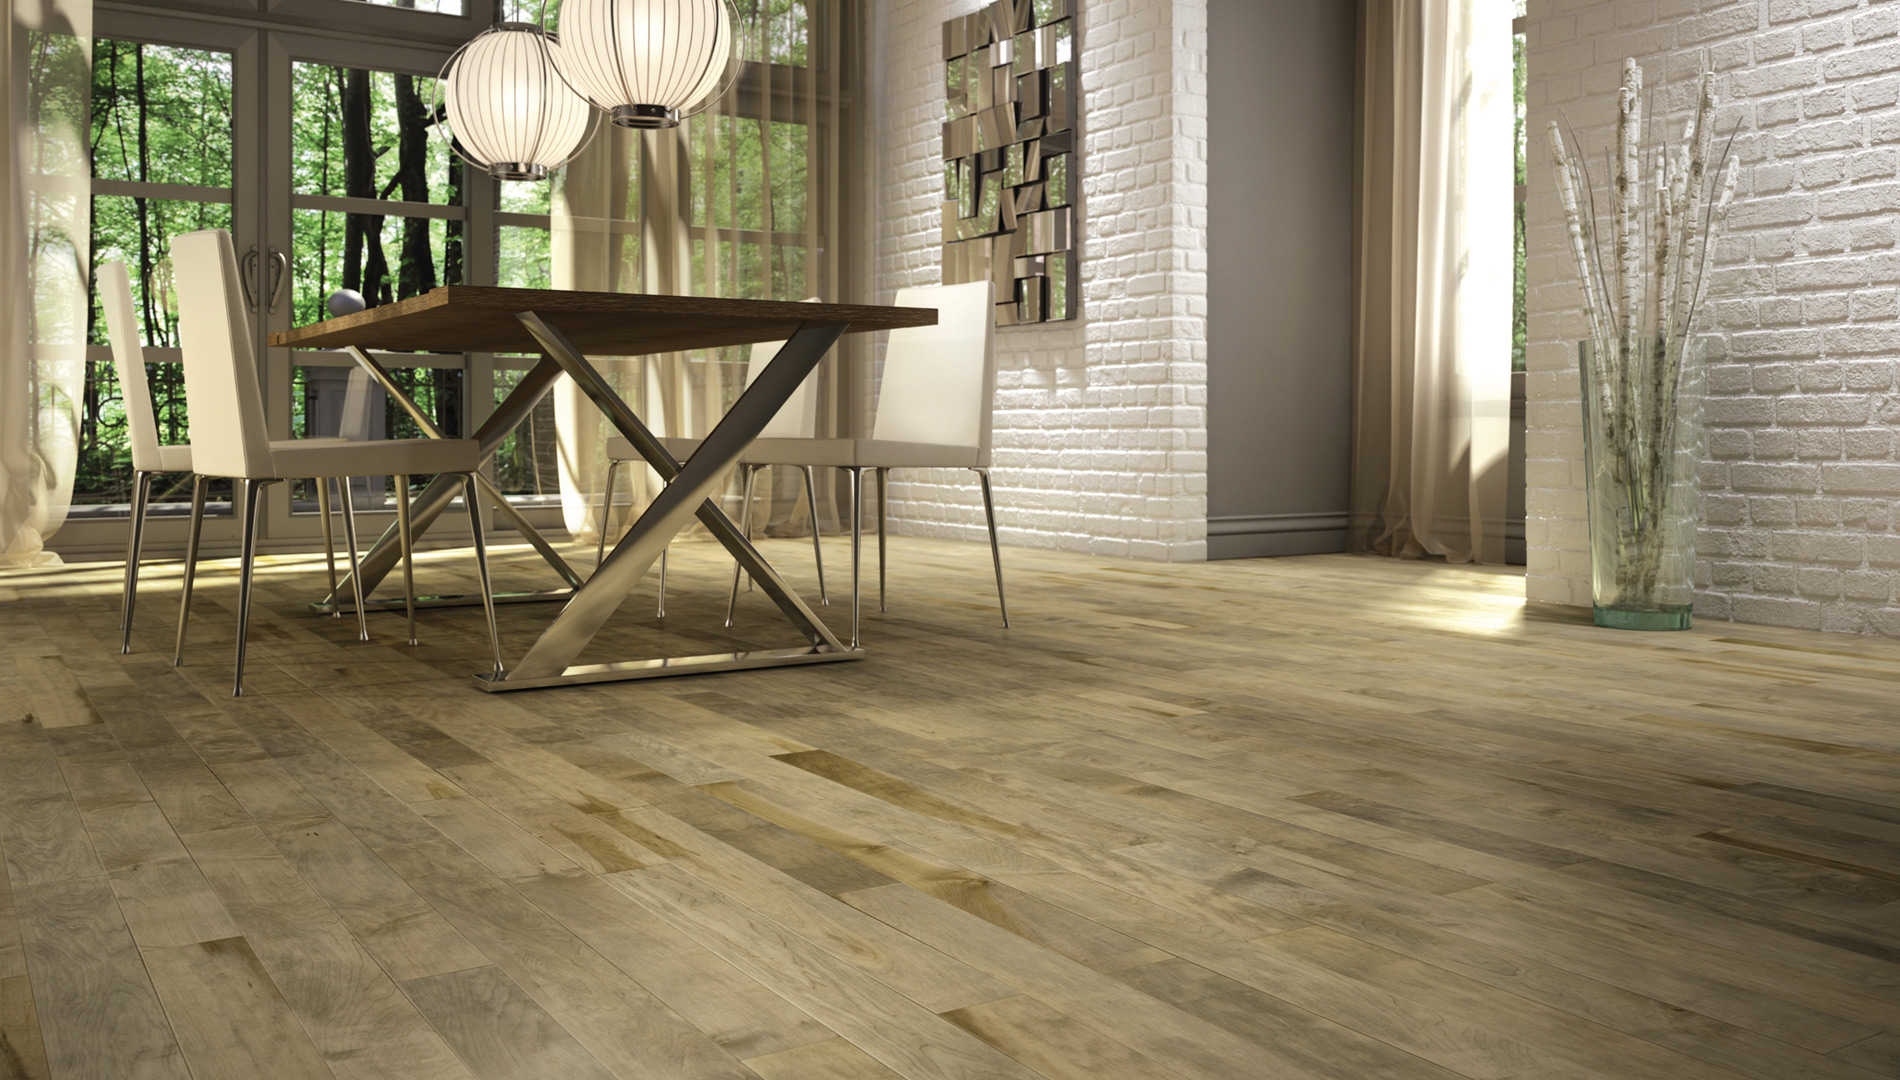 Lauzon Distinctive Hardwood Flooring A Company Overview